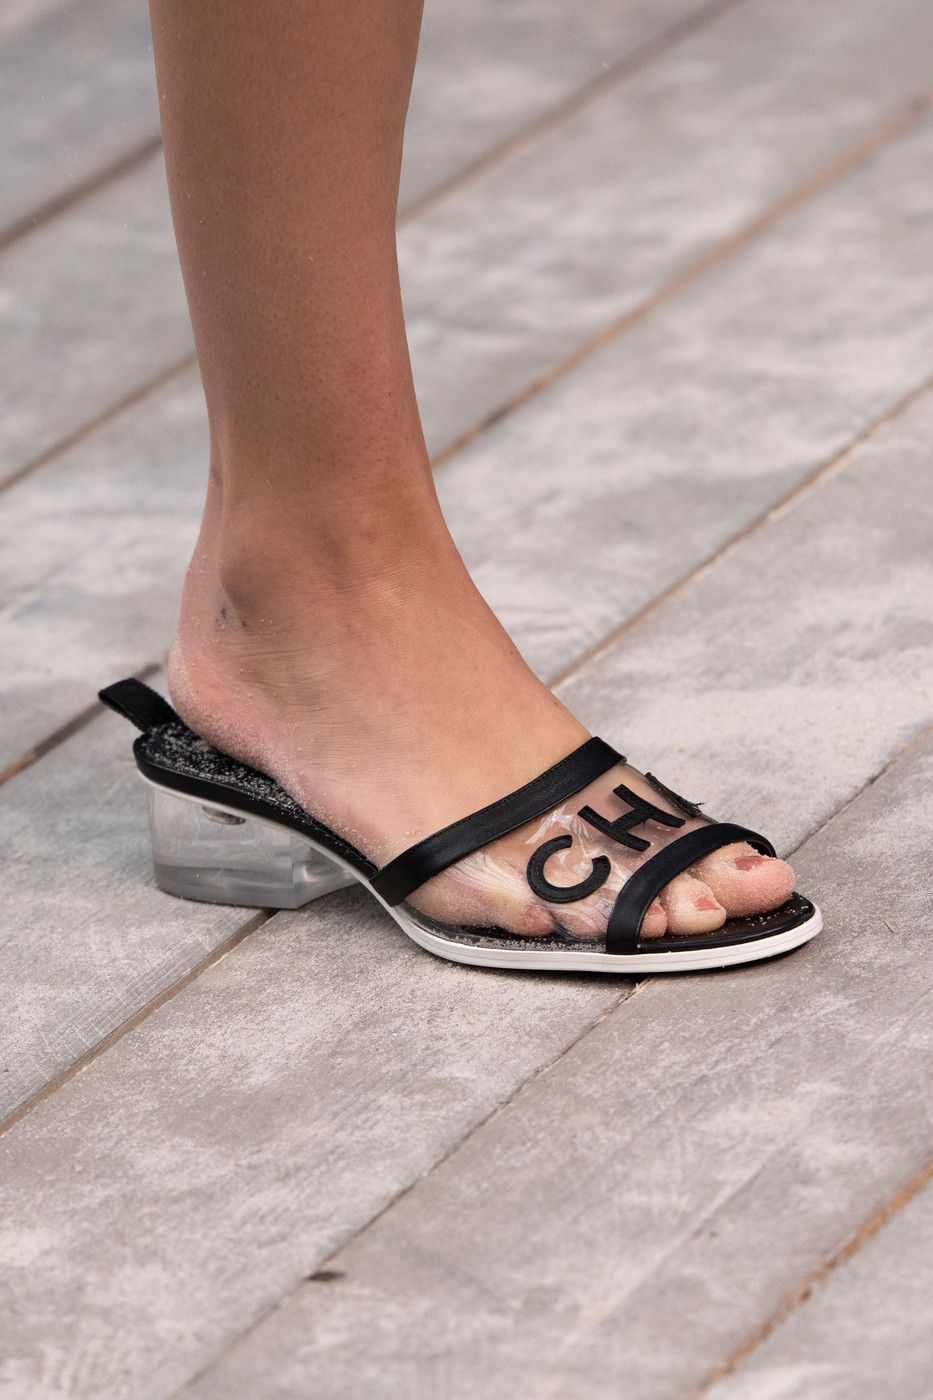 e5a7ce74ca Chanel at Paris Fashion Week Spring 2019 in 2019 | Shoes with great ...